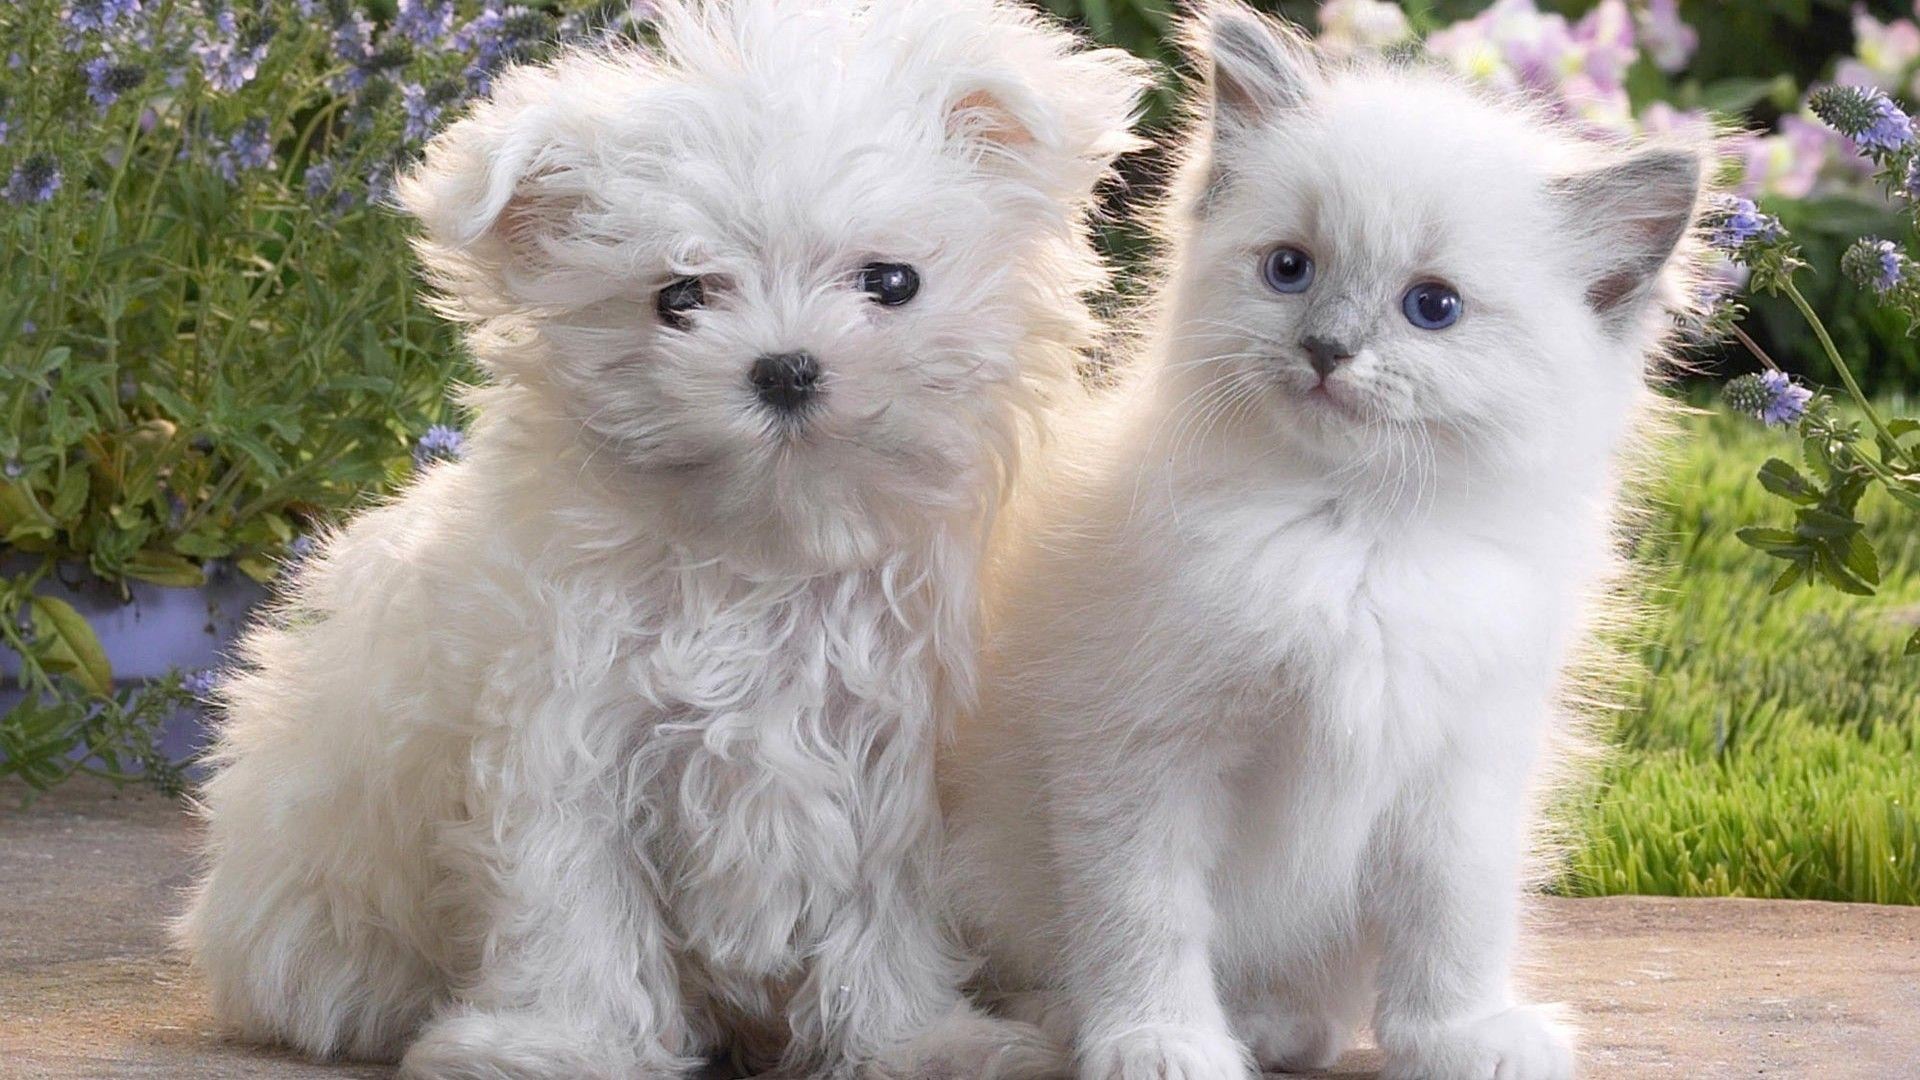 Puppies and Kittens Wallpapers for Laptop High Quality Download